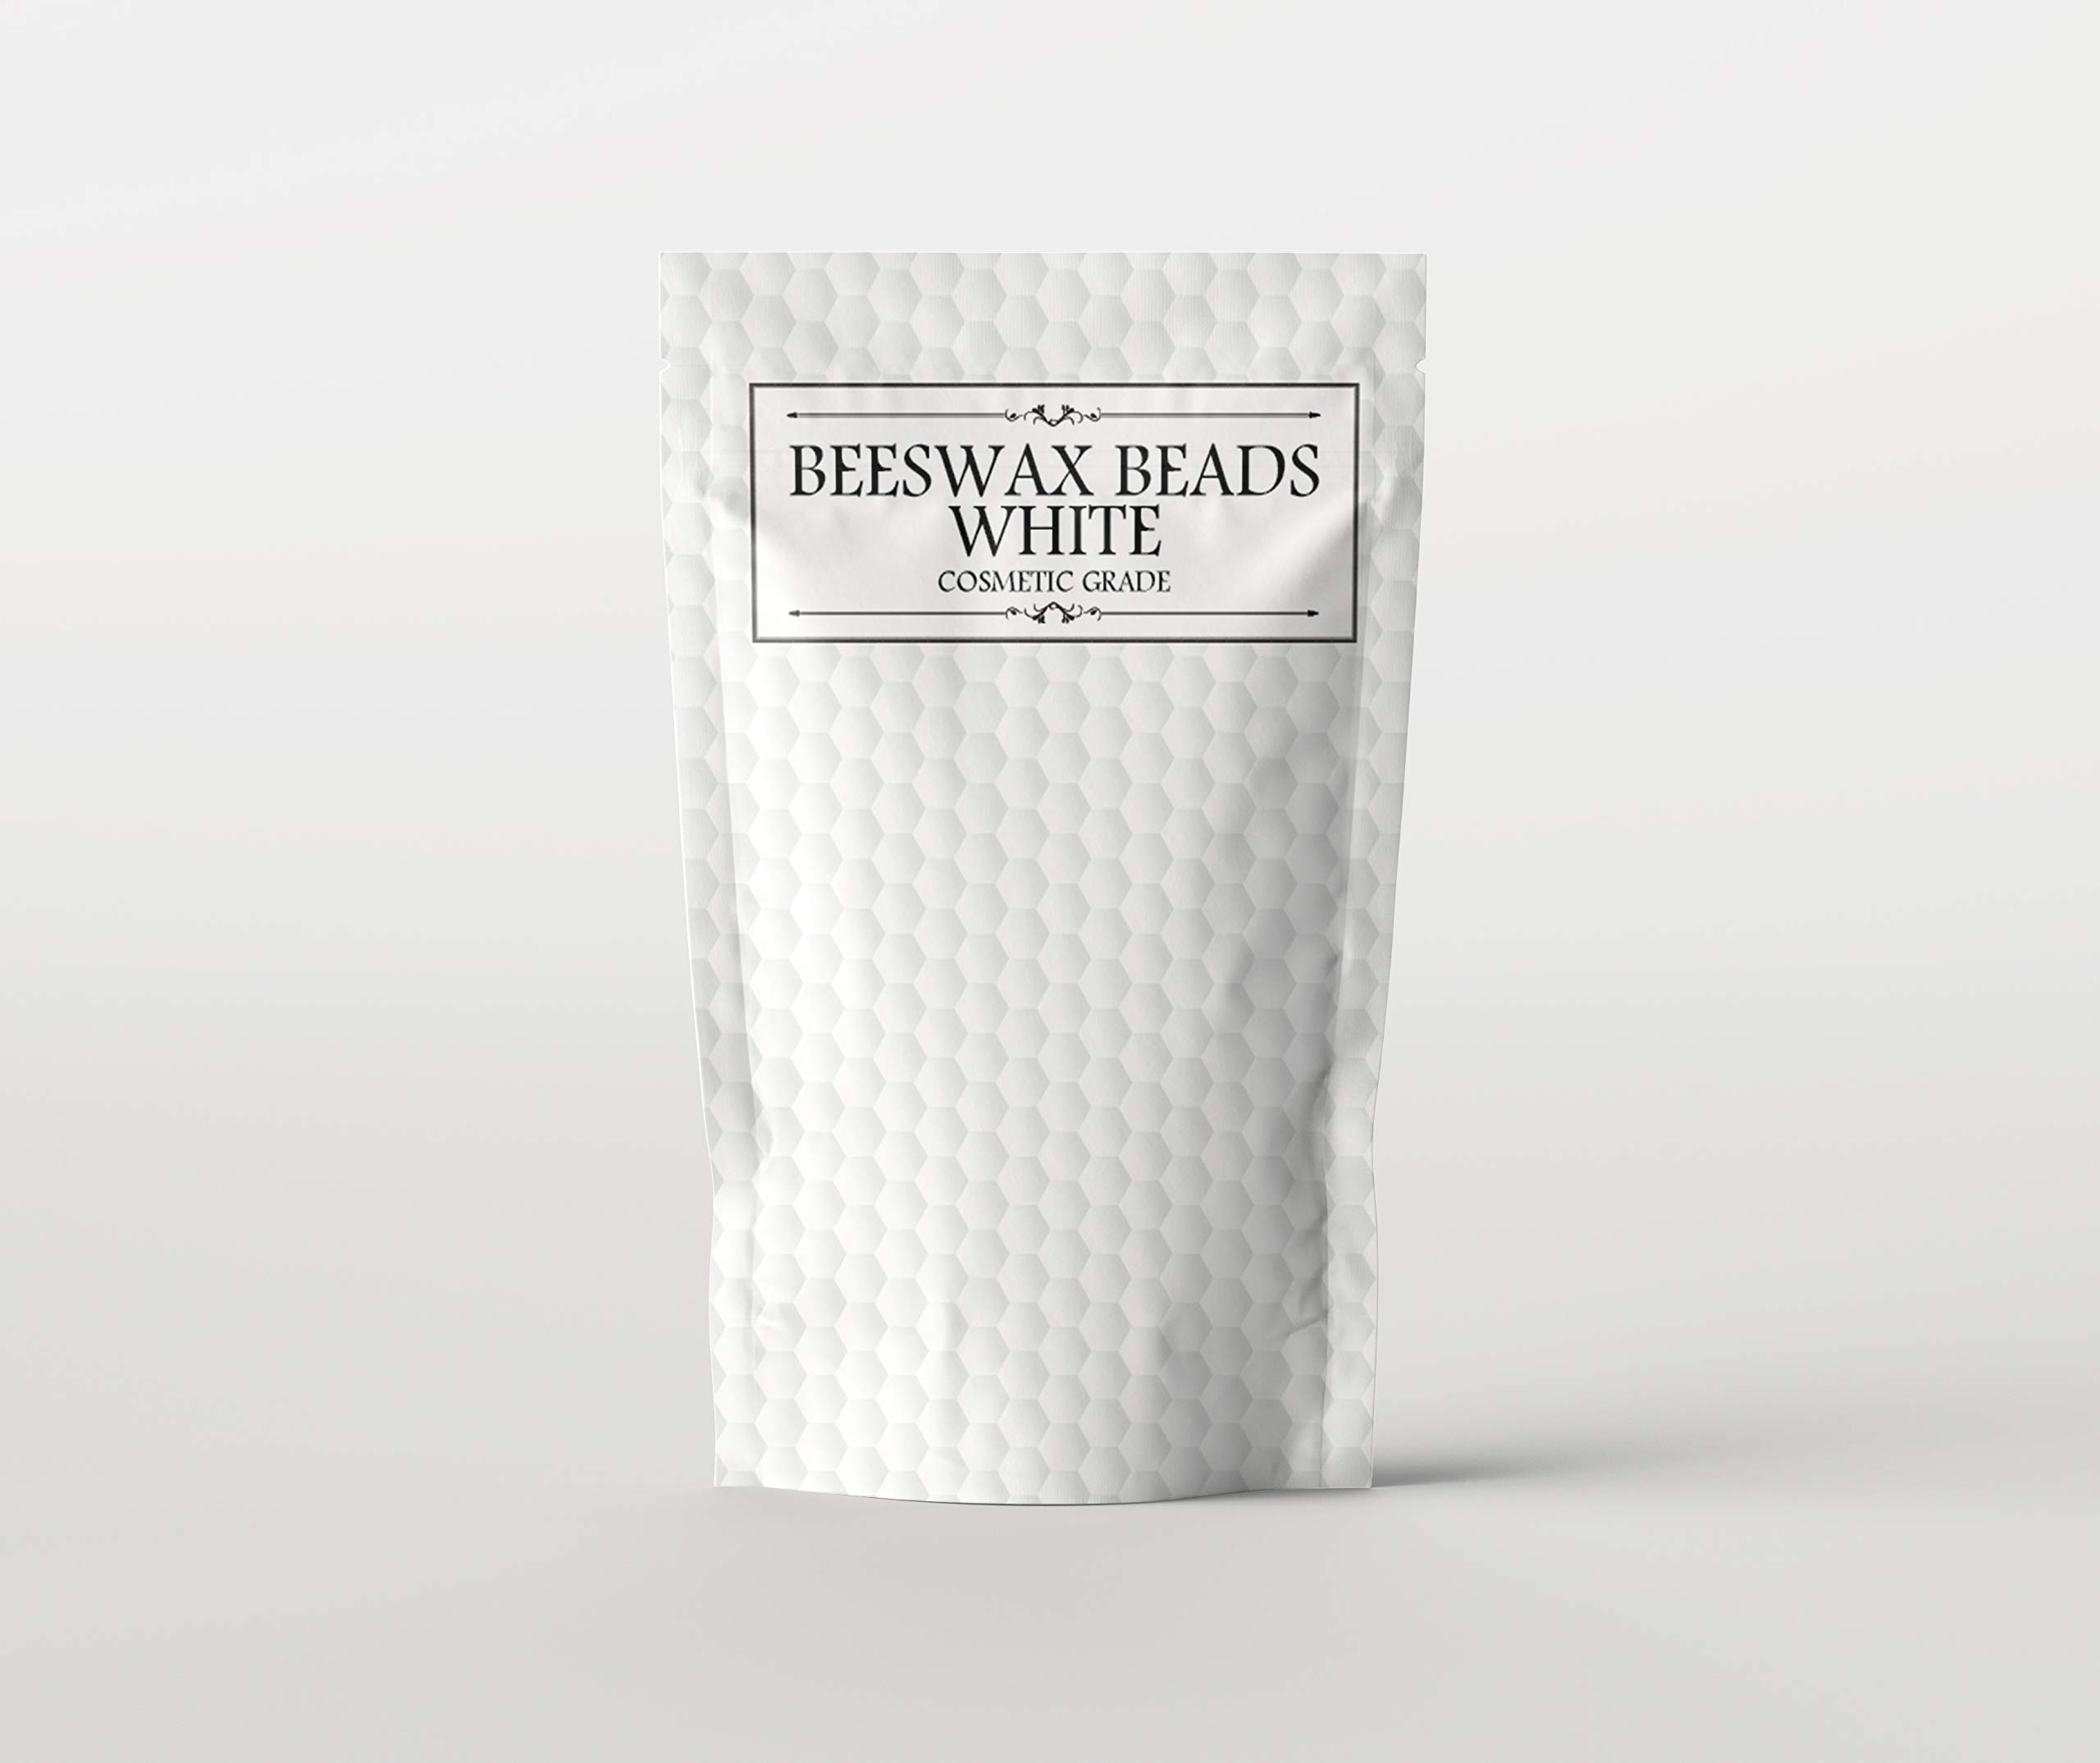 Mystic Moments Beeswax Beads White Cosmetic Grade - 5Kg